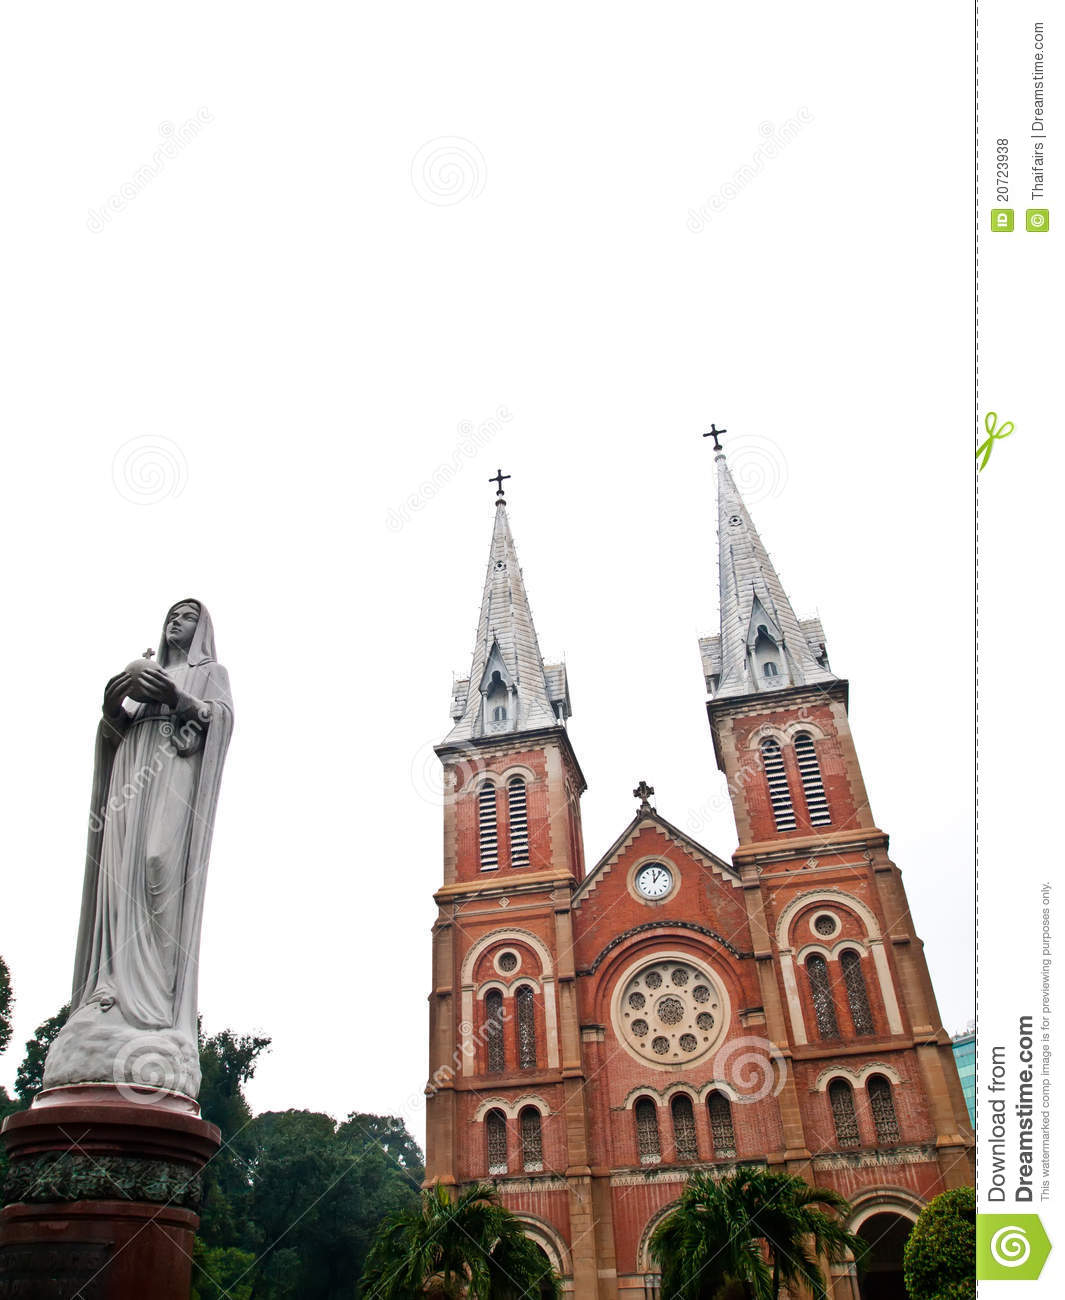 Virgin Вьетнама notre minh mary ho dame города хиа